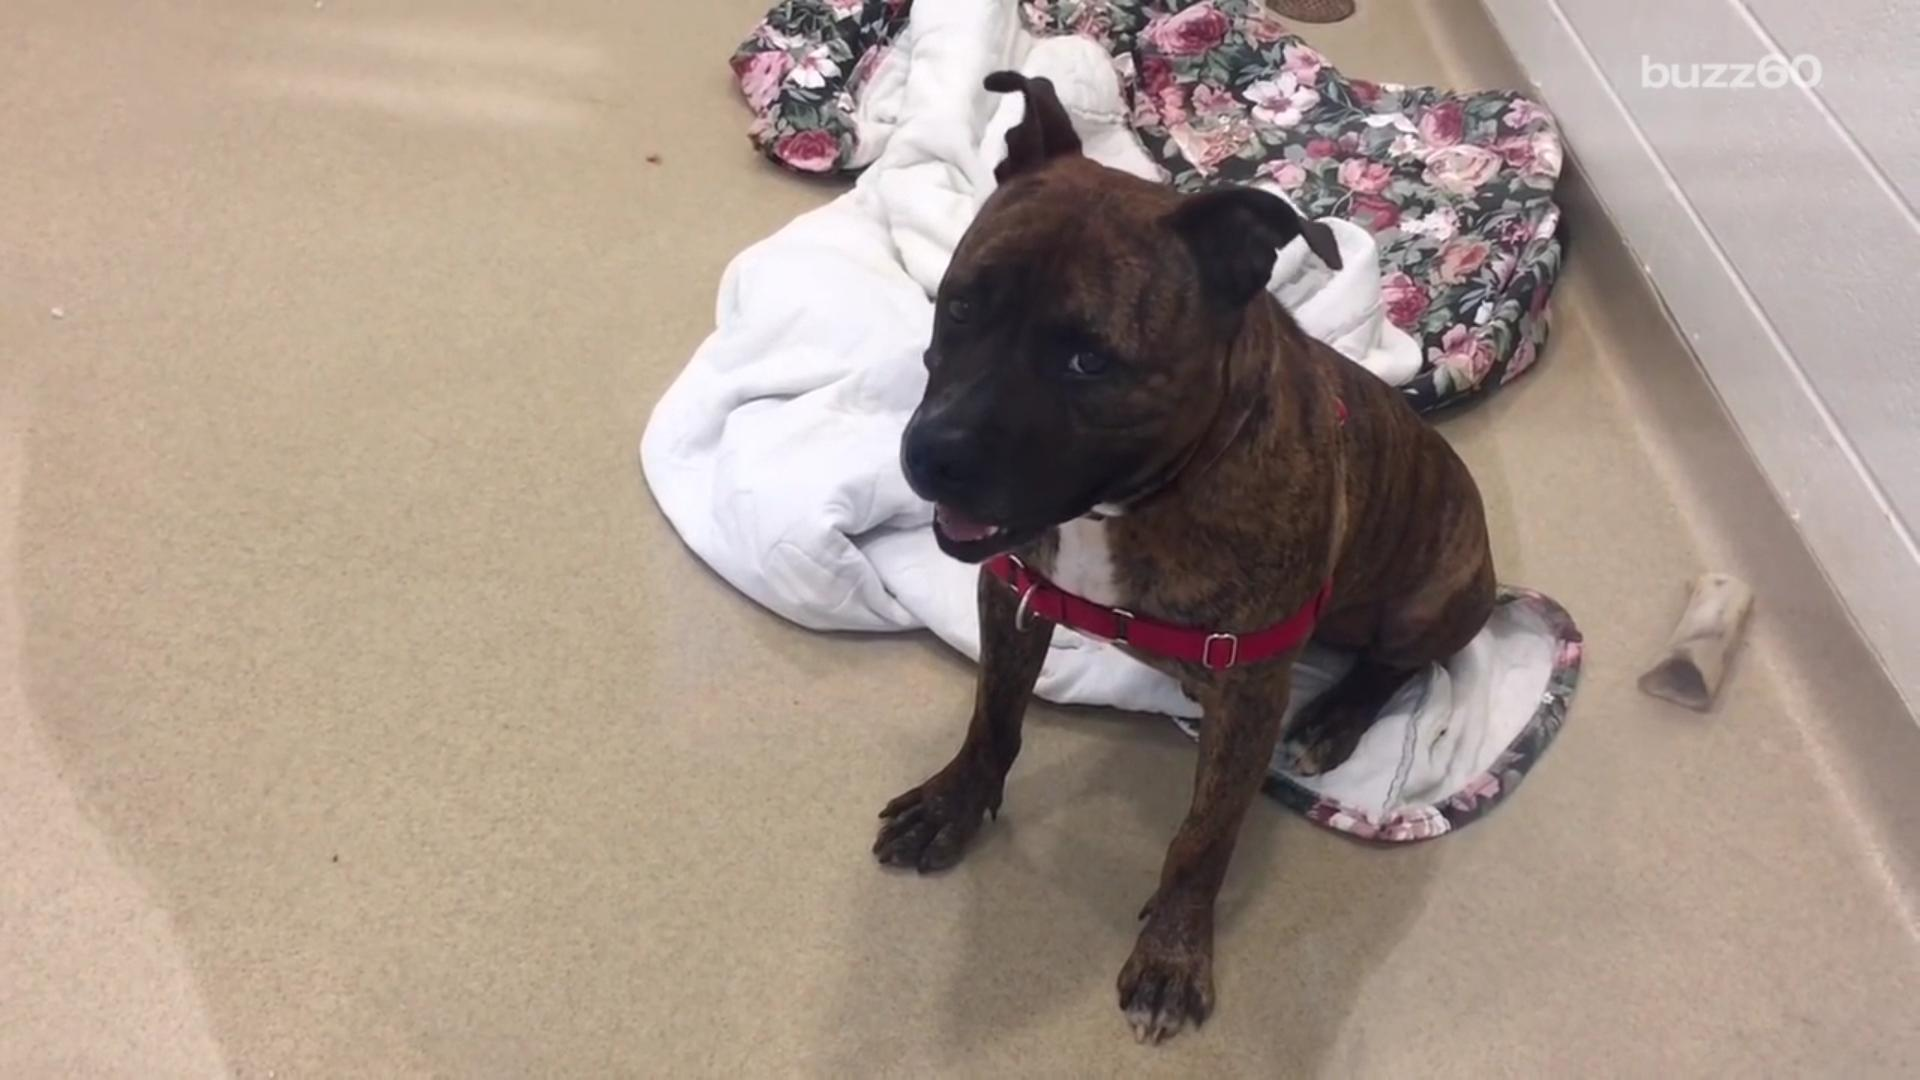 Crying Shelter Dog from Viral Video Gets Adopted, Making Us Cry